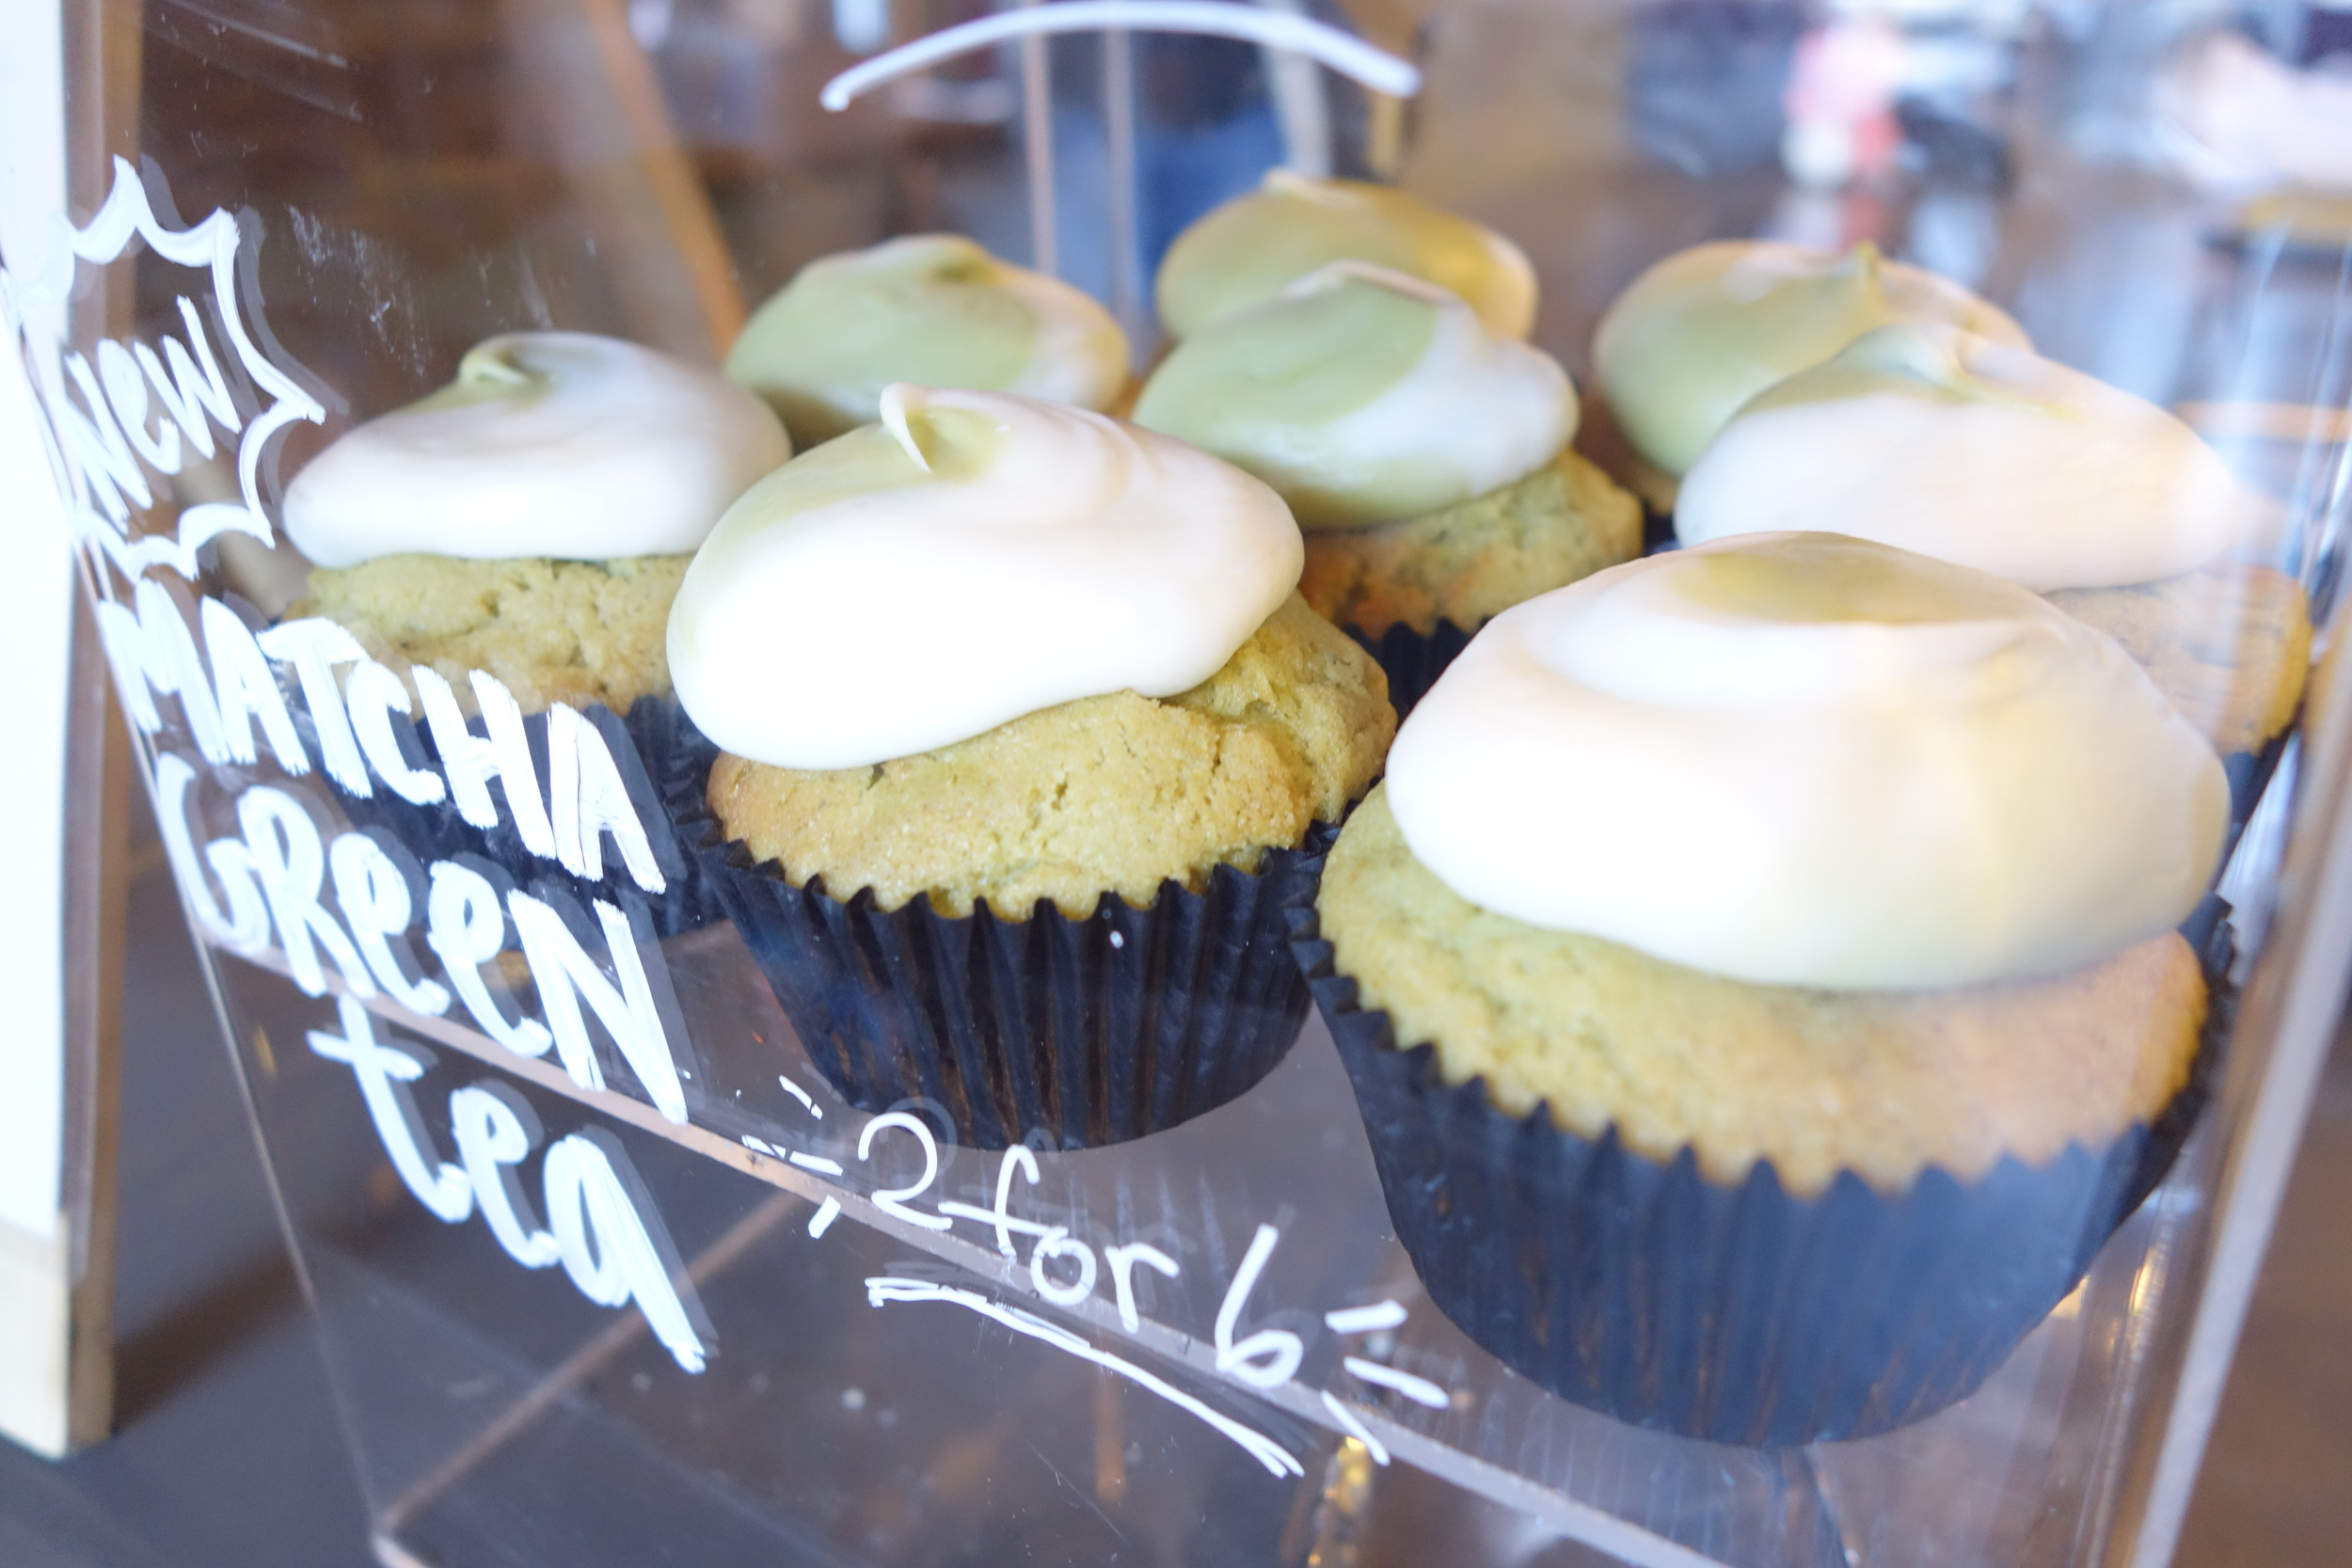 Matcha Green Tea Cupcakes by We The Minis.